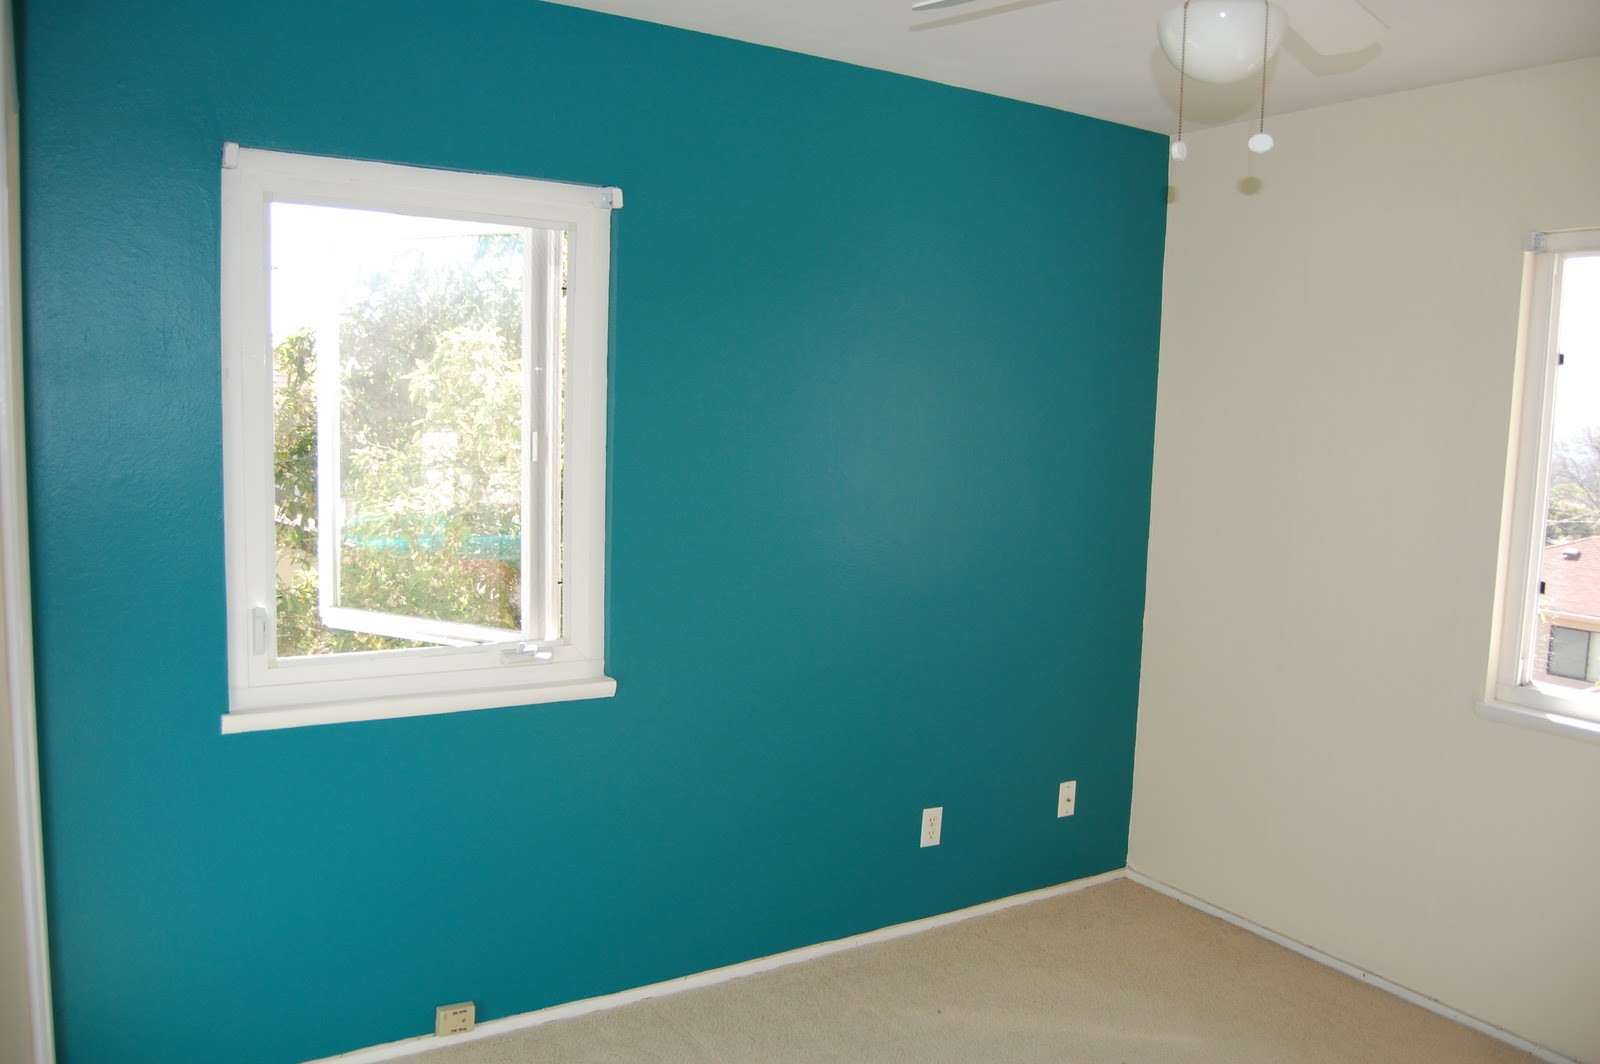 Tom and katy baby painted baby 39 s room for Bedroom ideas with teal walls